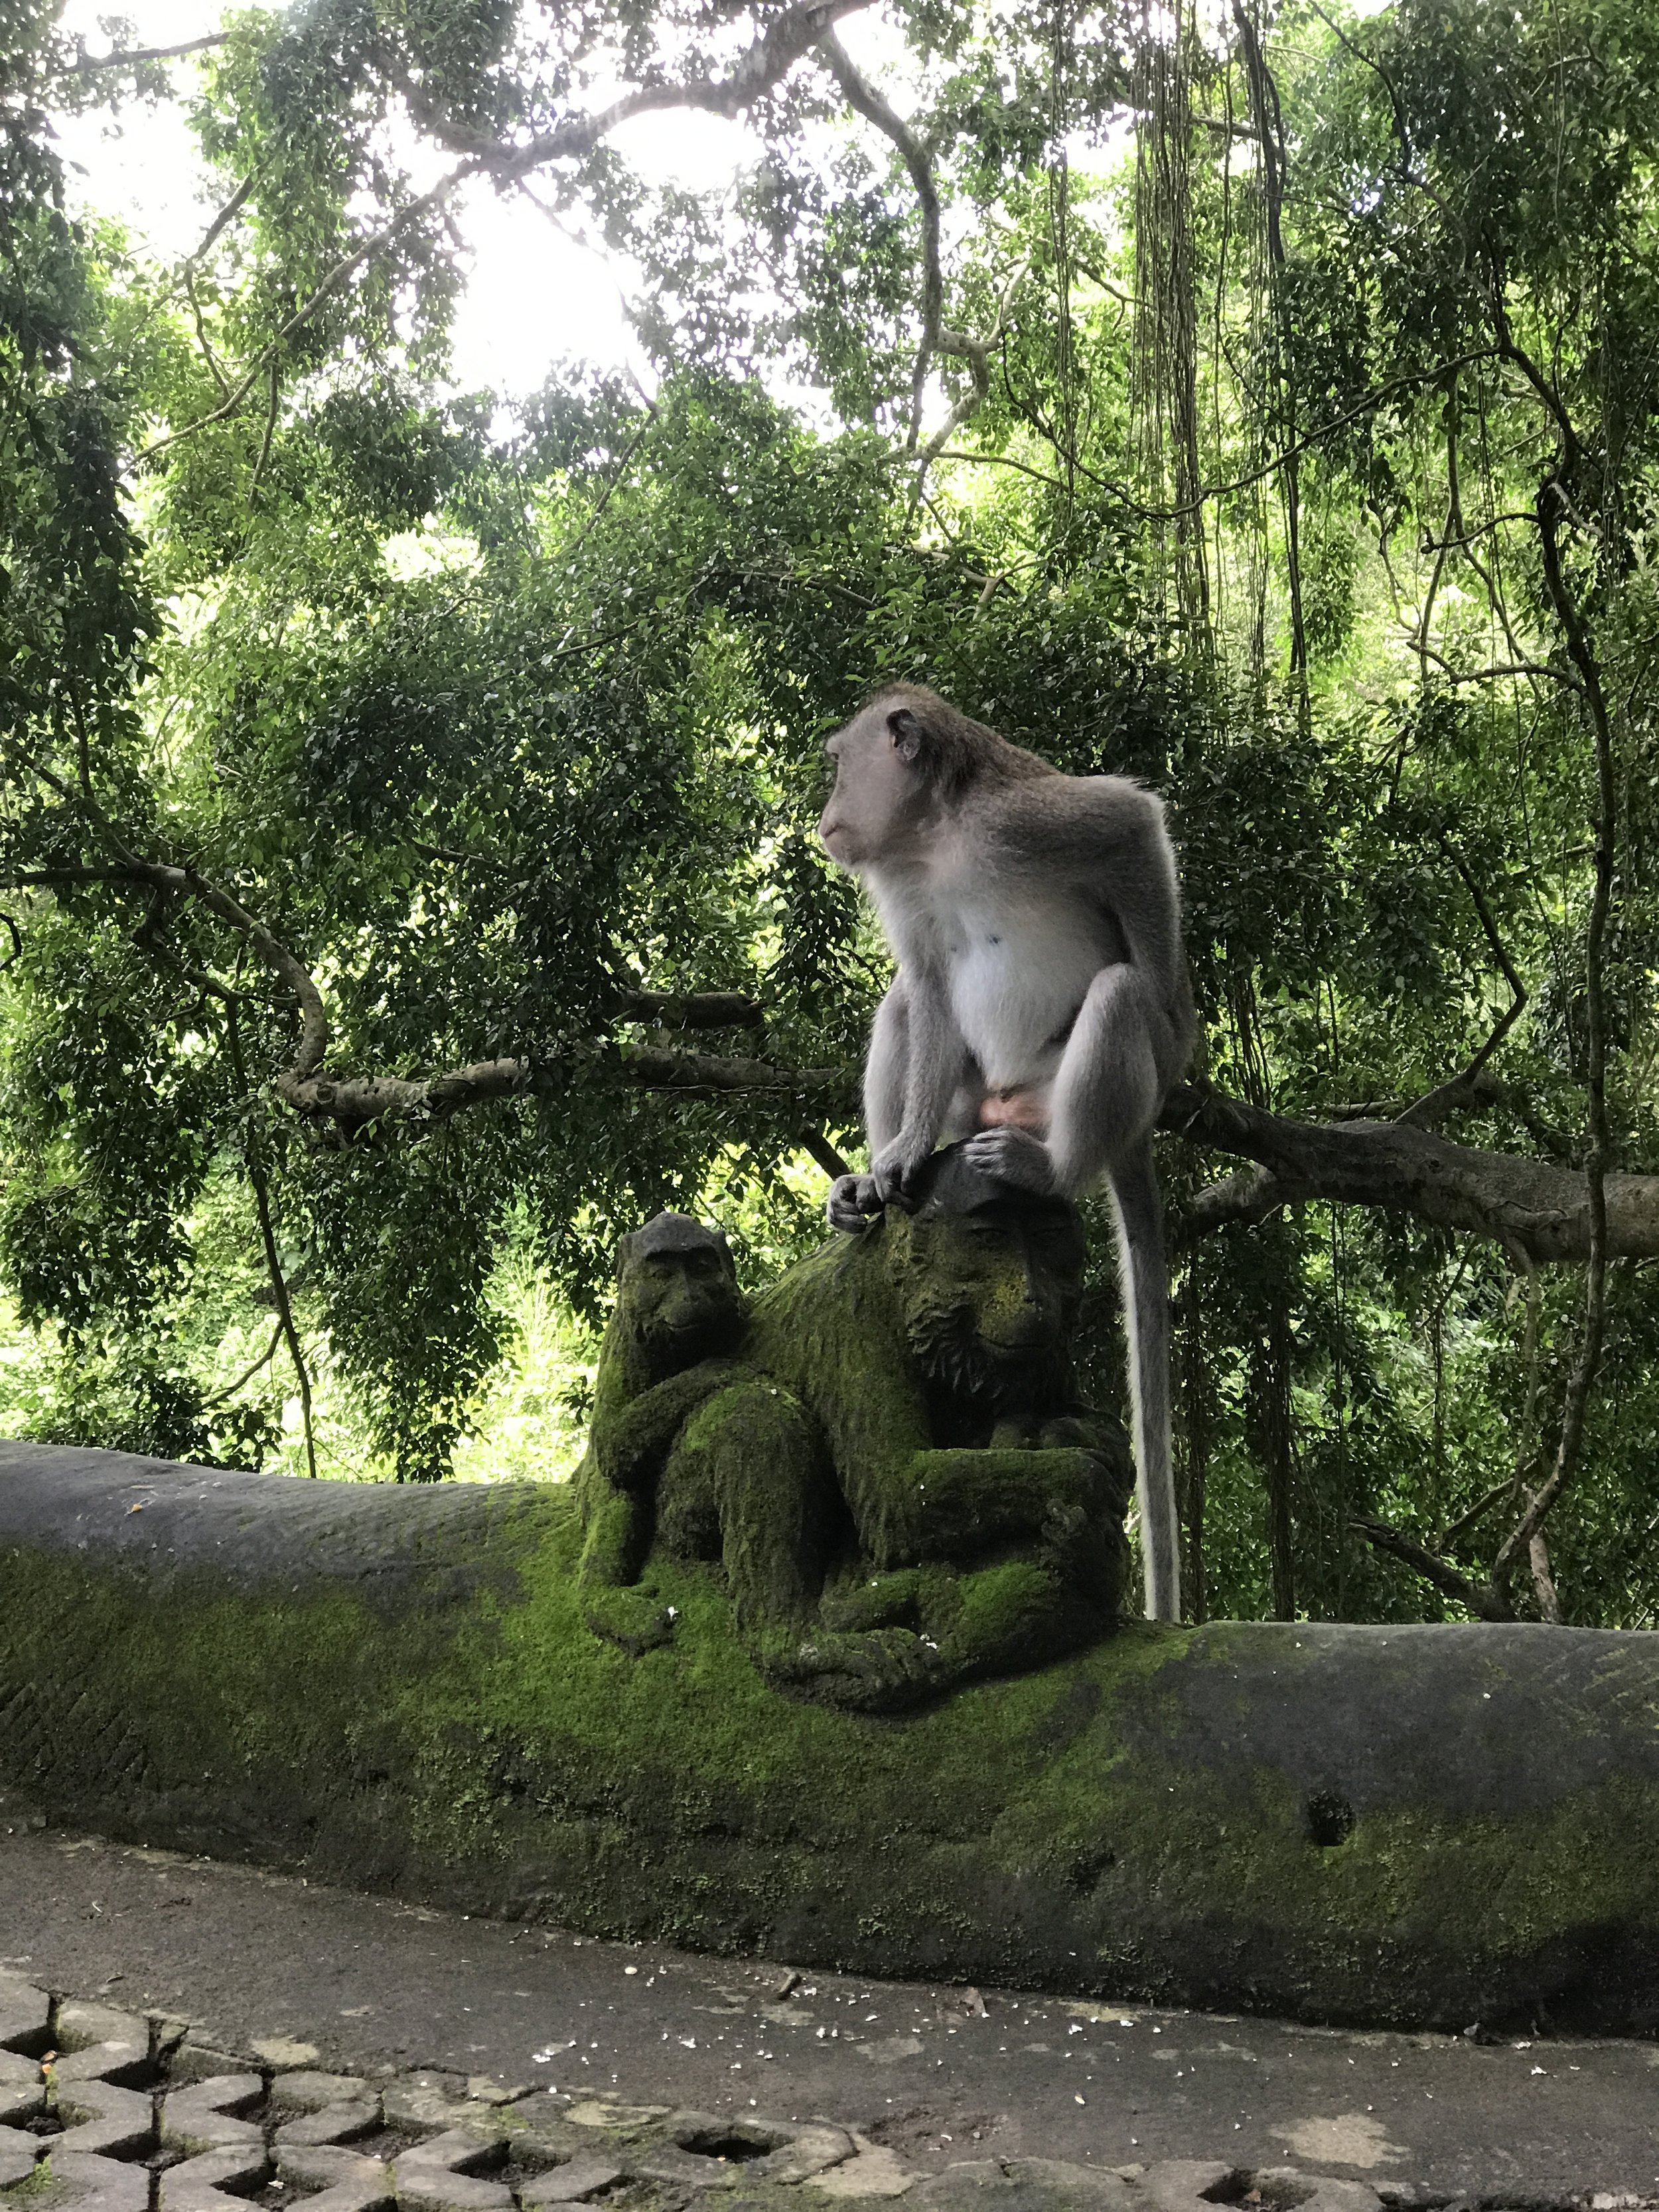 Ubud Sacred Monkey Forest_Monkey on a Monkey Statue.JPG